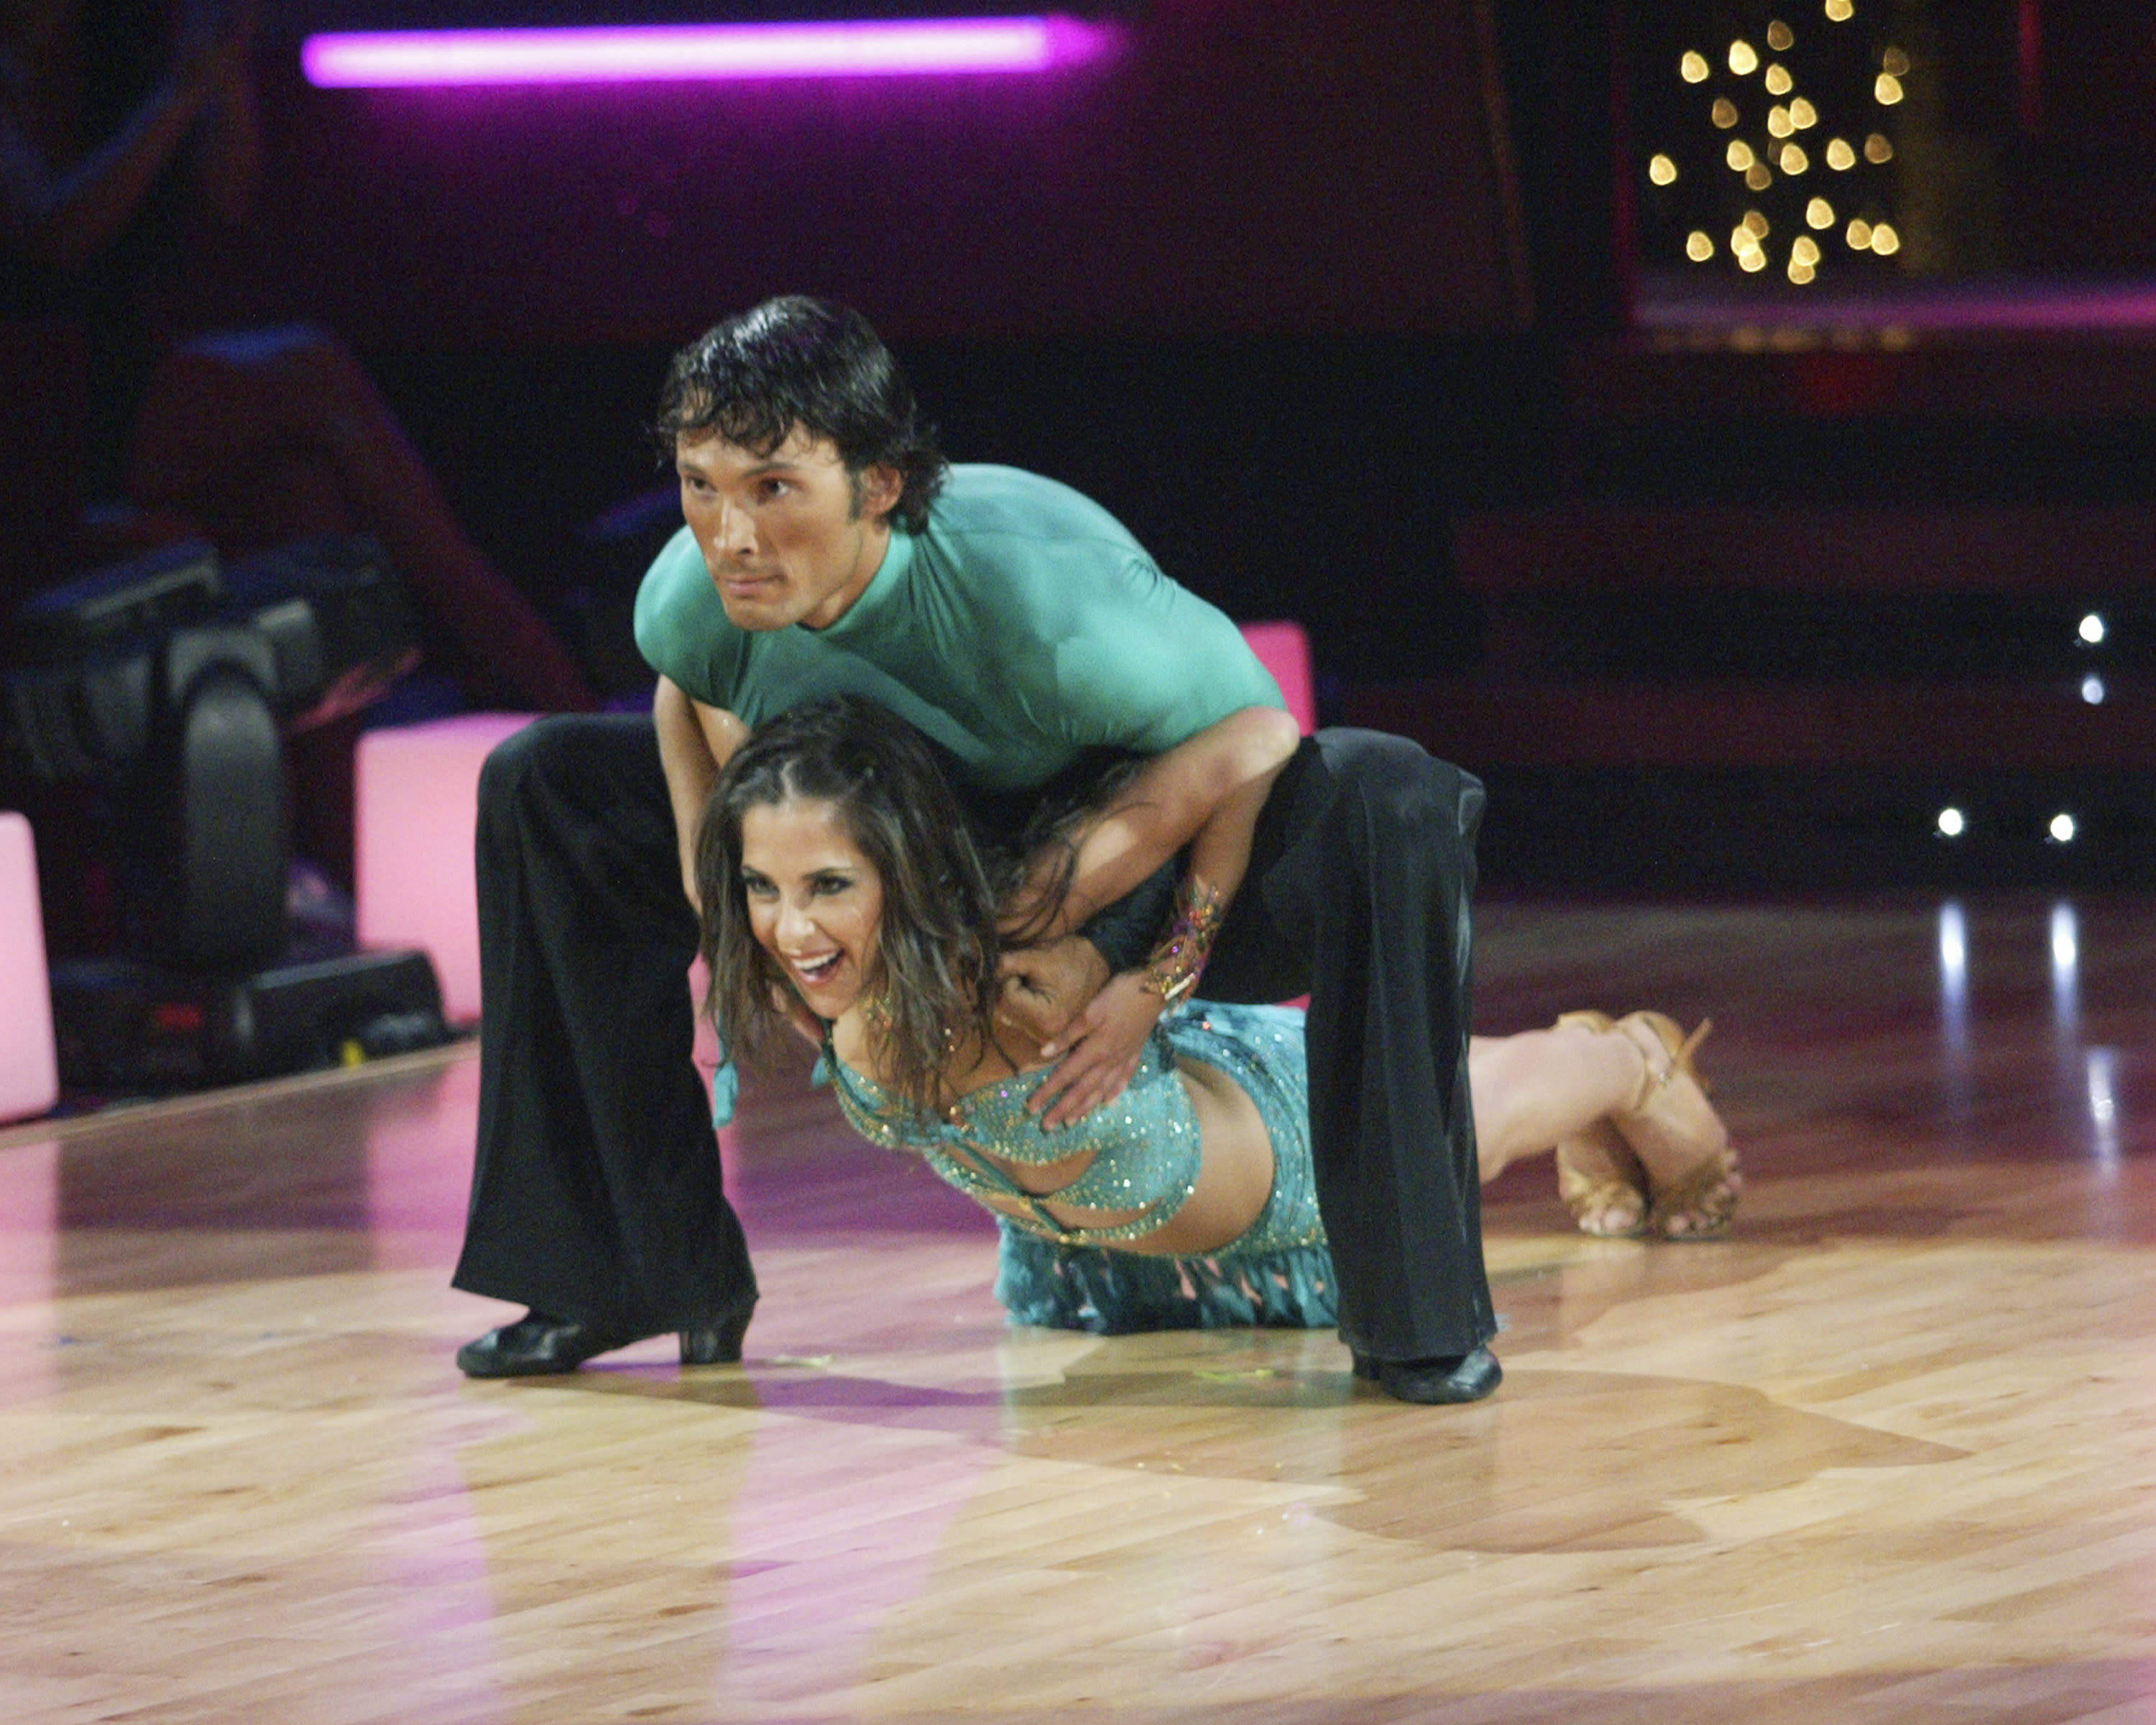 Kelly Monaco holds onto her top as she nails a dance move. (Photo by Adam Larkey/Walt Disney Television via Getty Images)